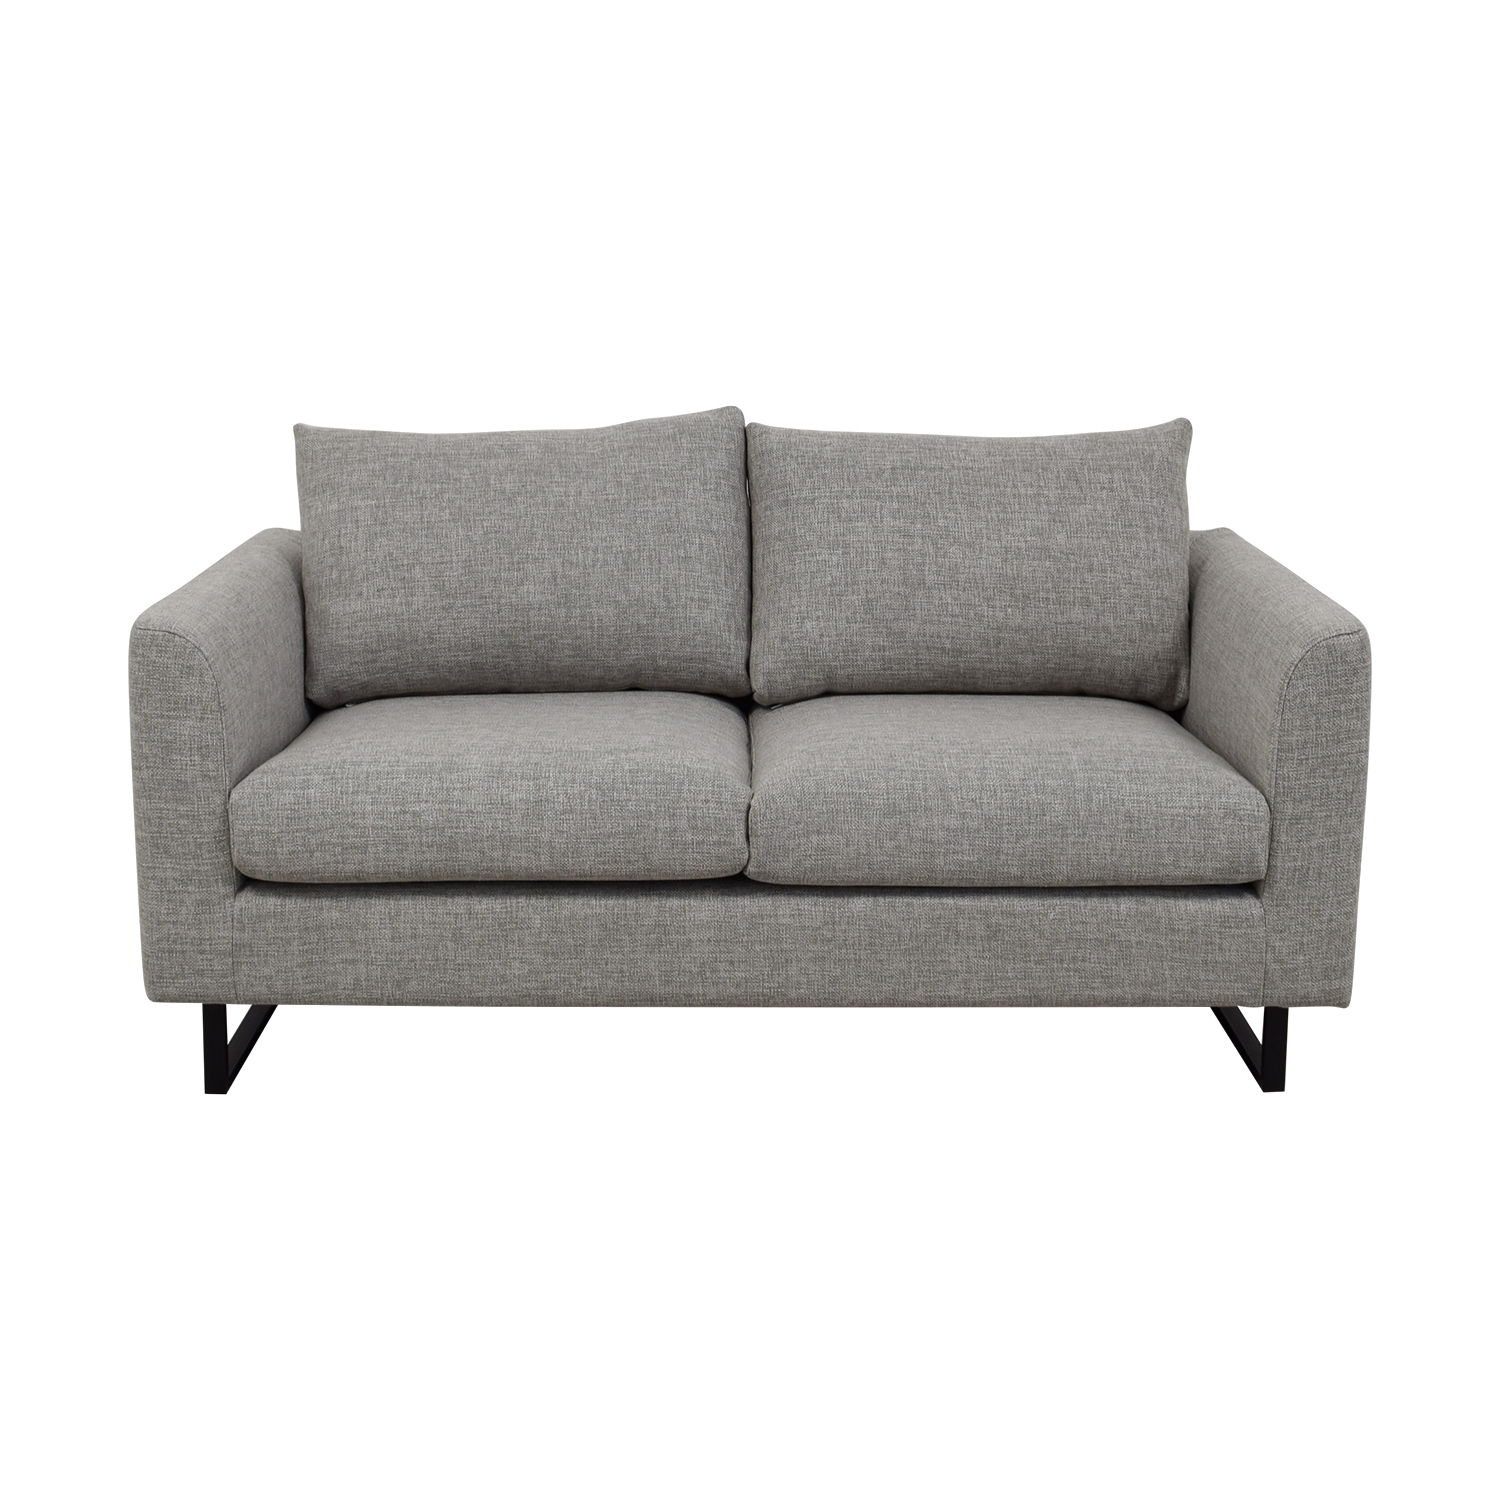 [%63% Off – Owens Gray Loveseat / Sofas In Famous Owens Loveseats With Cushion|owens Loveseats With Cushion With Regard To Widely Used 63% Off – Owens Gray Loveseat / Sofas|newest Owens Loveseats With Cushion Inside 63% Off – Owens Gray Loveseat / Sofas|trendy 63% Off – Owens Gray Loveseat / Sofas Regarding Owens Loveseats With Cushion%] (View 9 of 20)